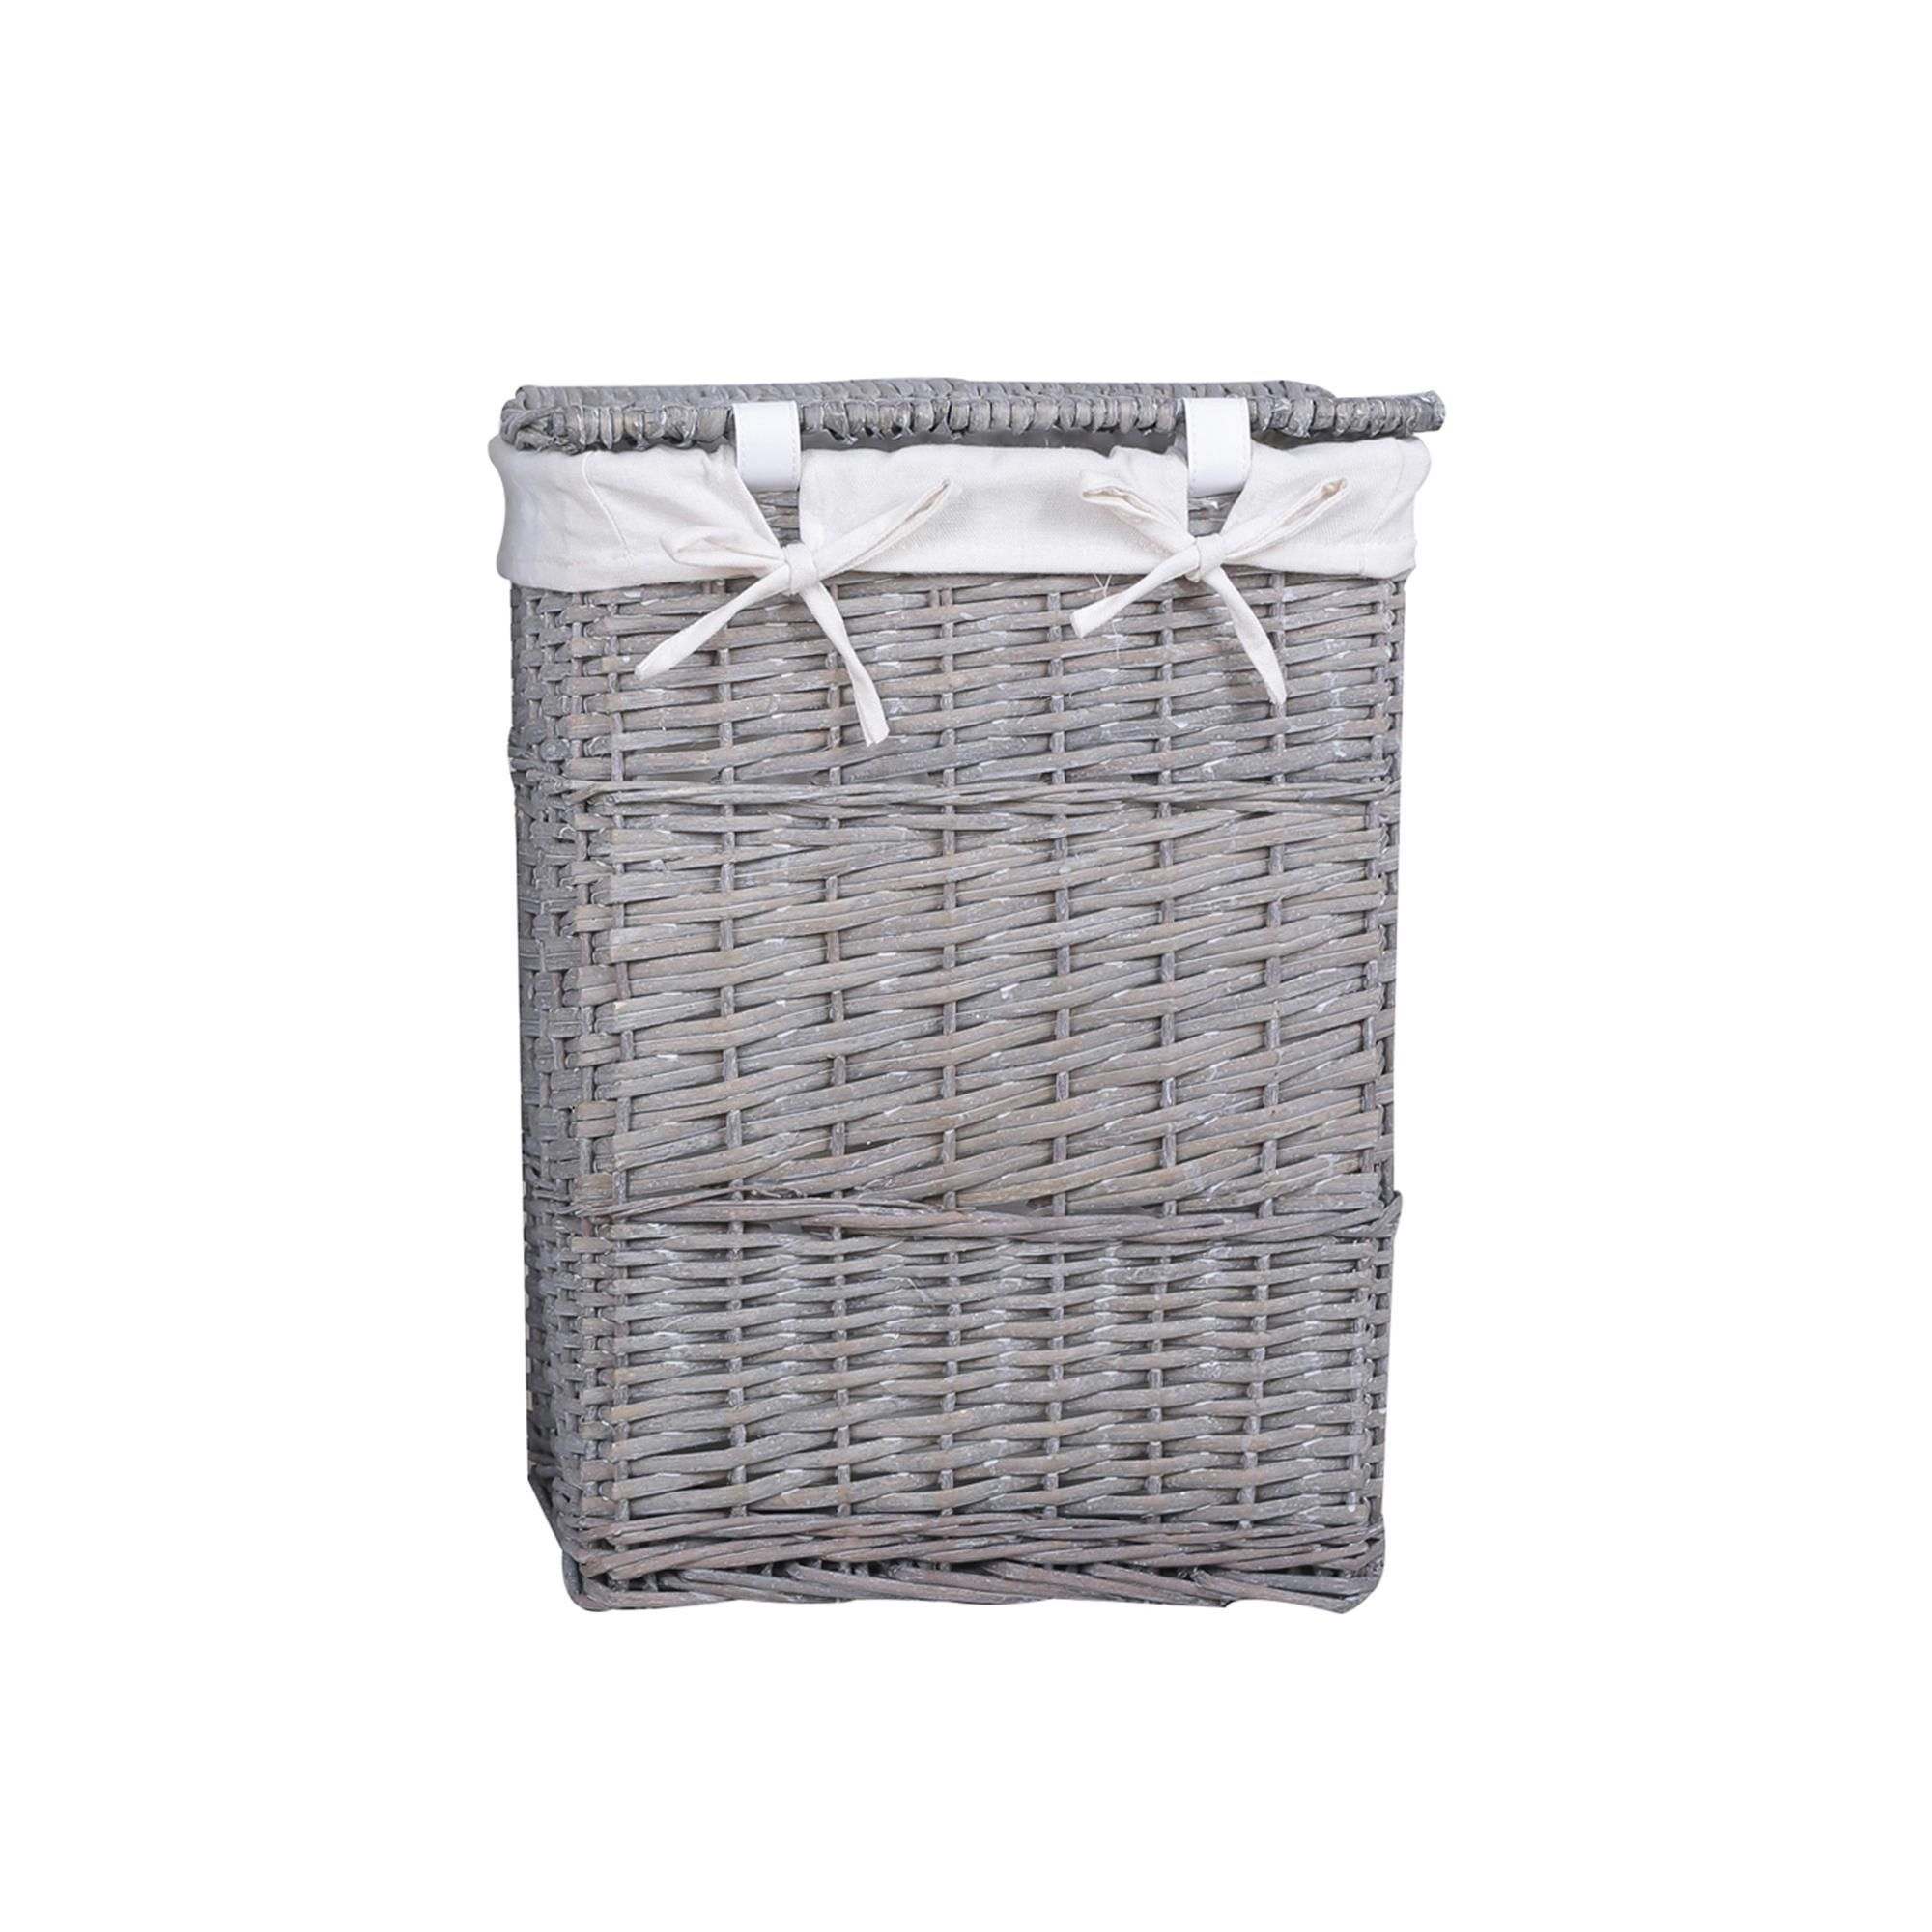 Versailles Grey Square Laundry Basket In 2020 Laundry Basket